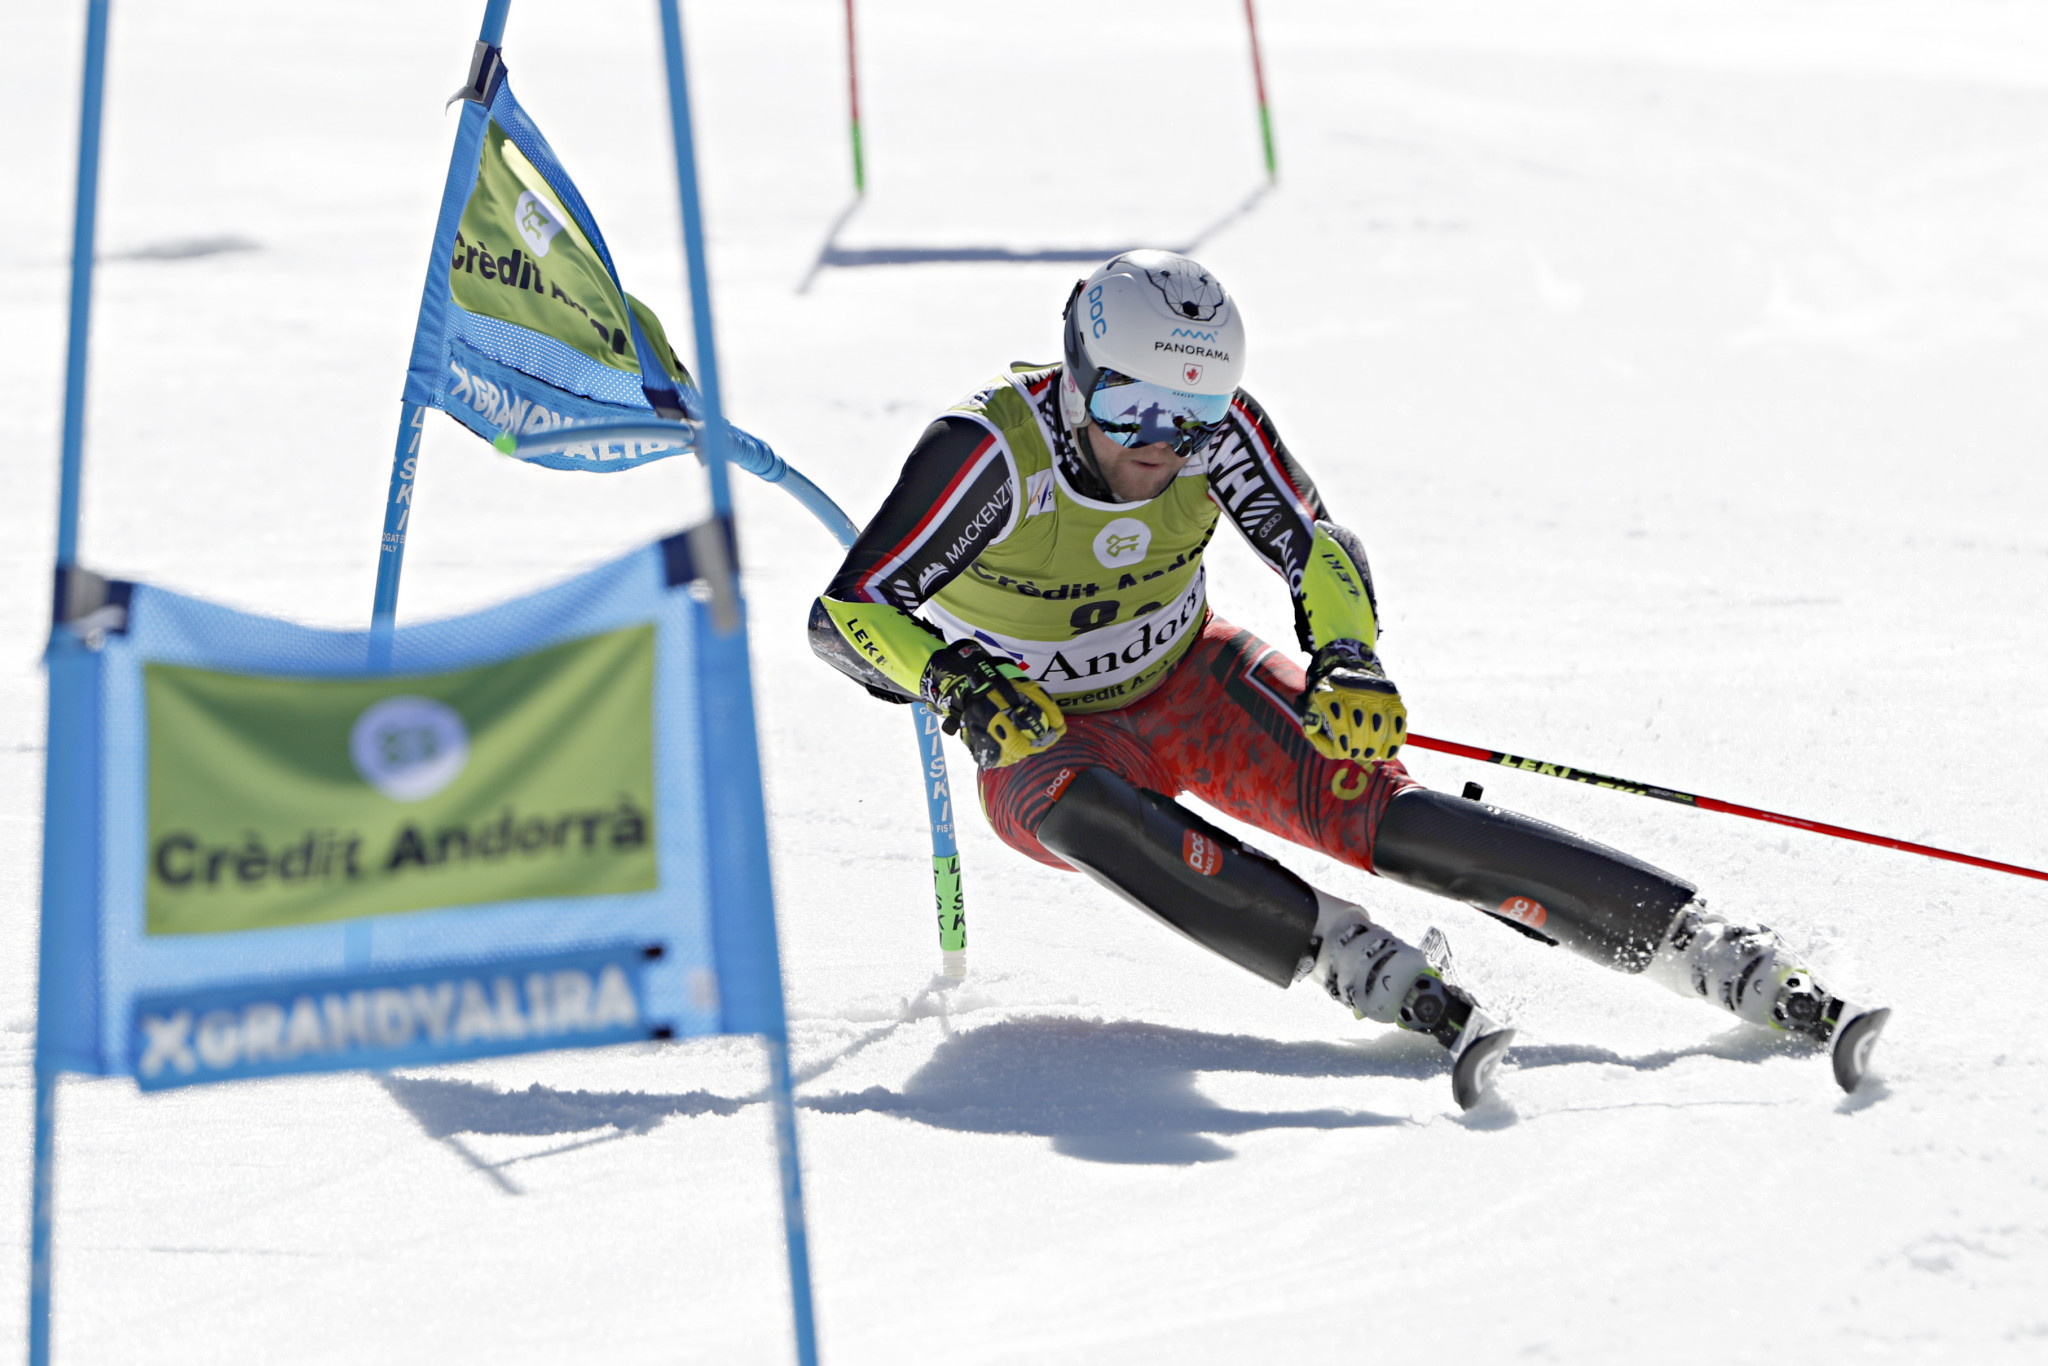 Nominations to Canada's Alpine, Para-Alpine and ski cross teams for 2019-2020 season announced